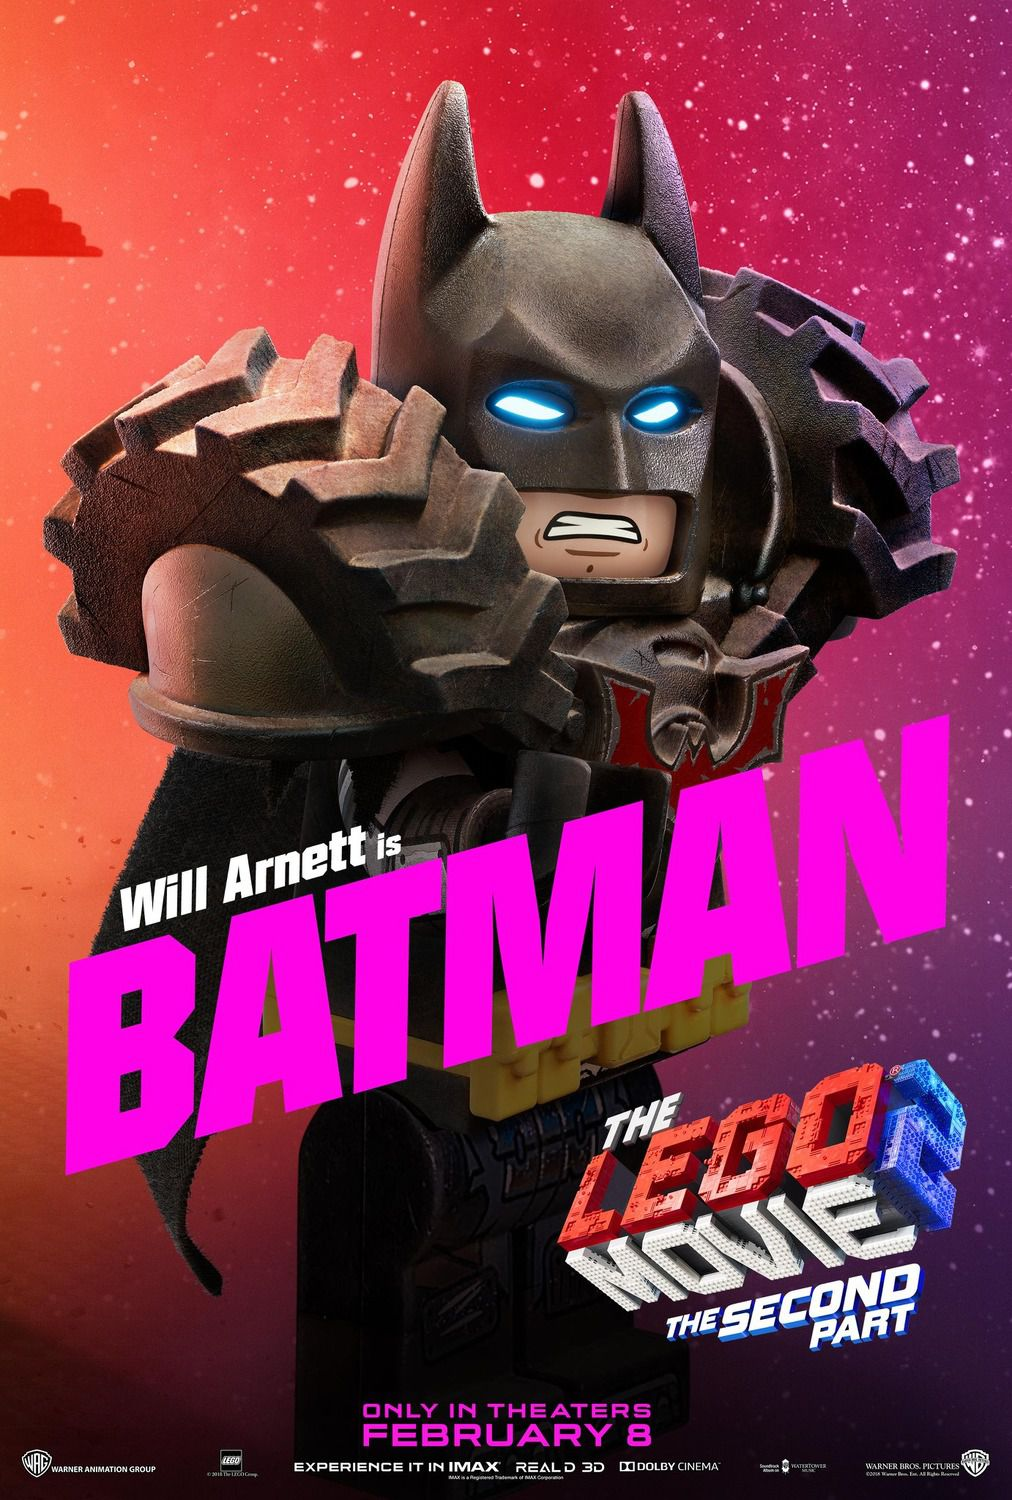 Will Arnett is Batman